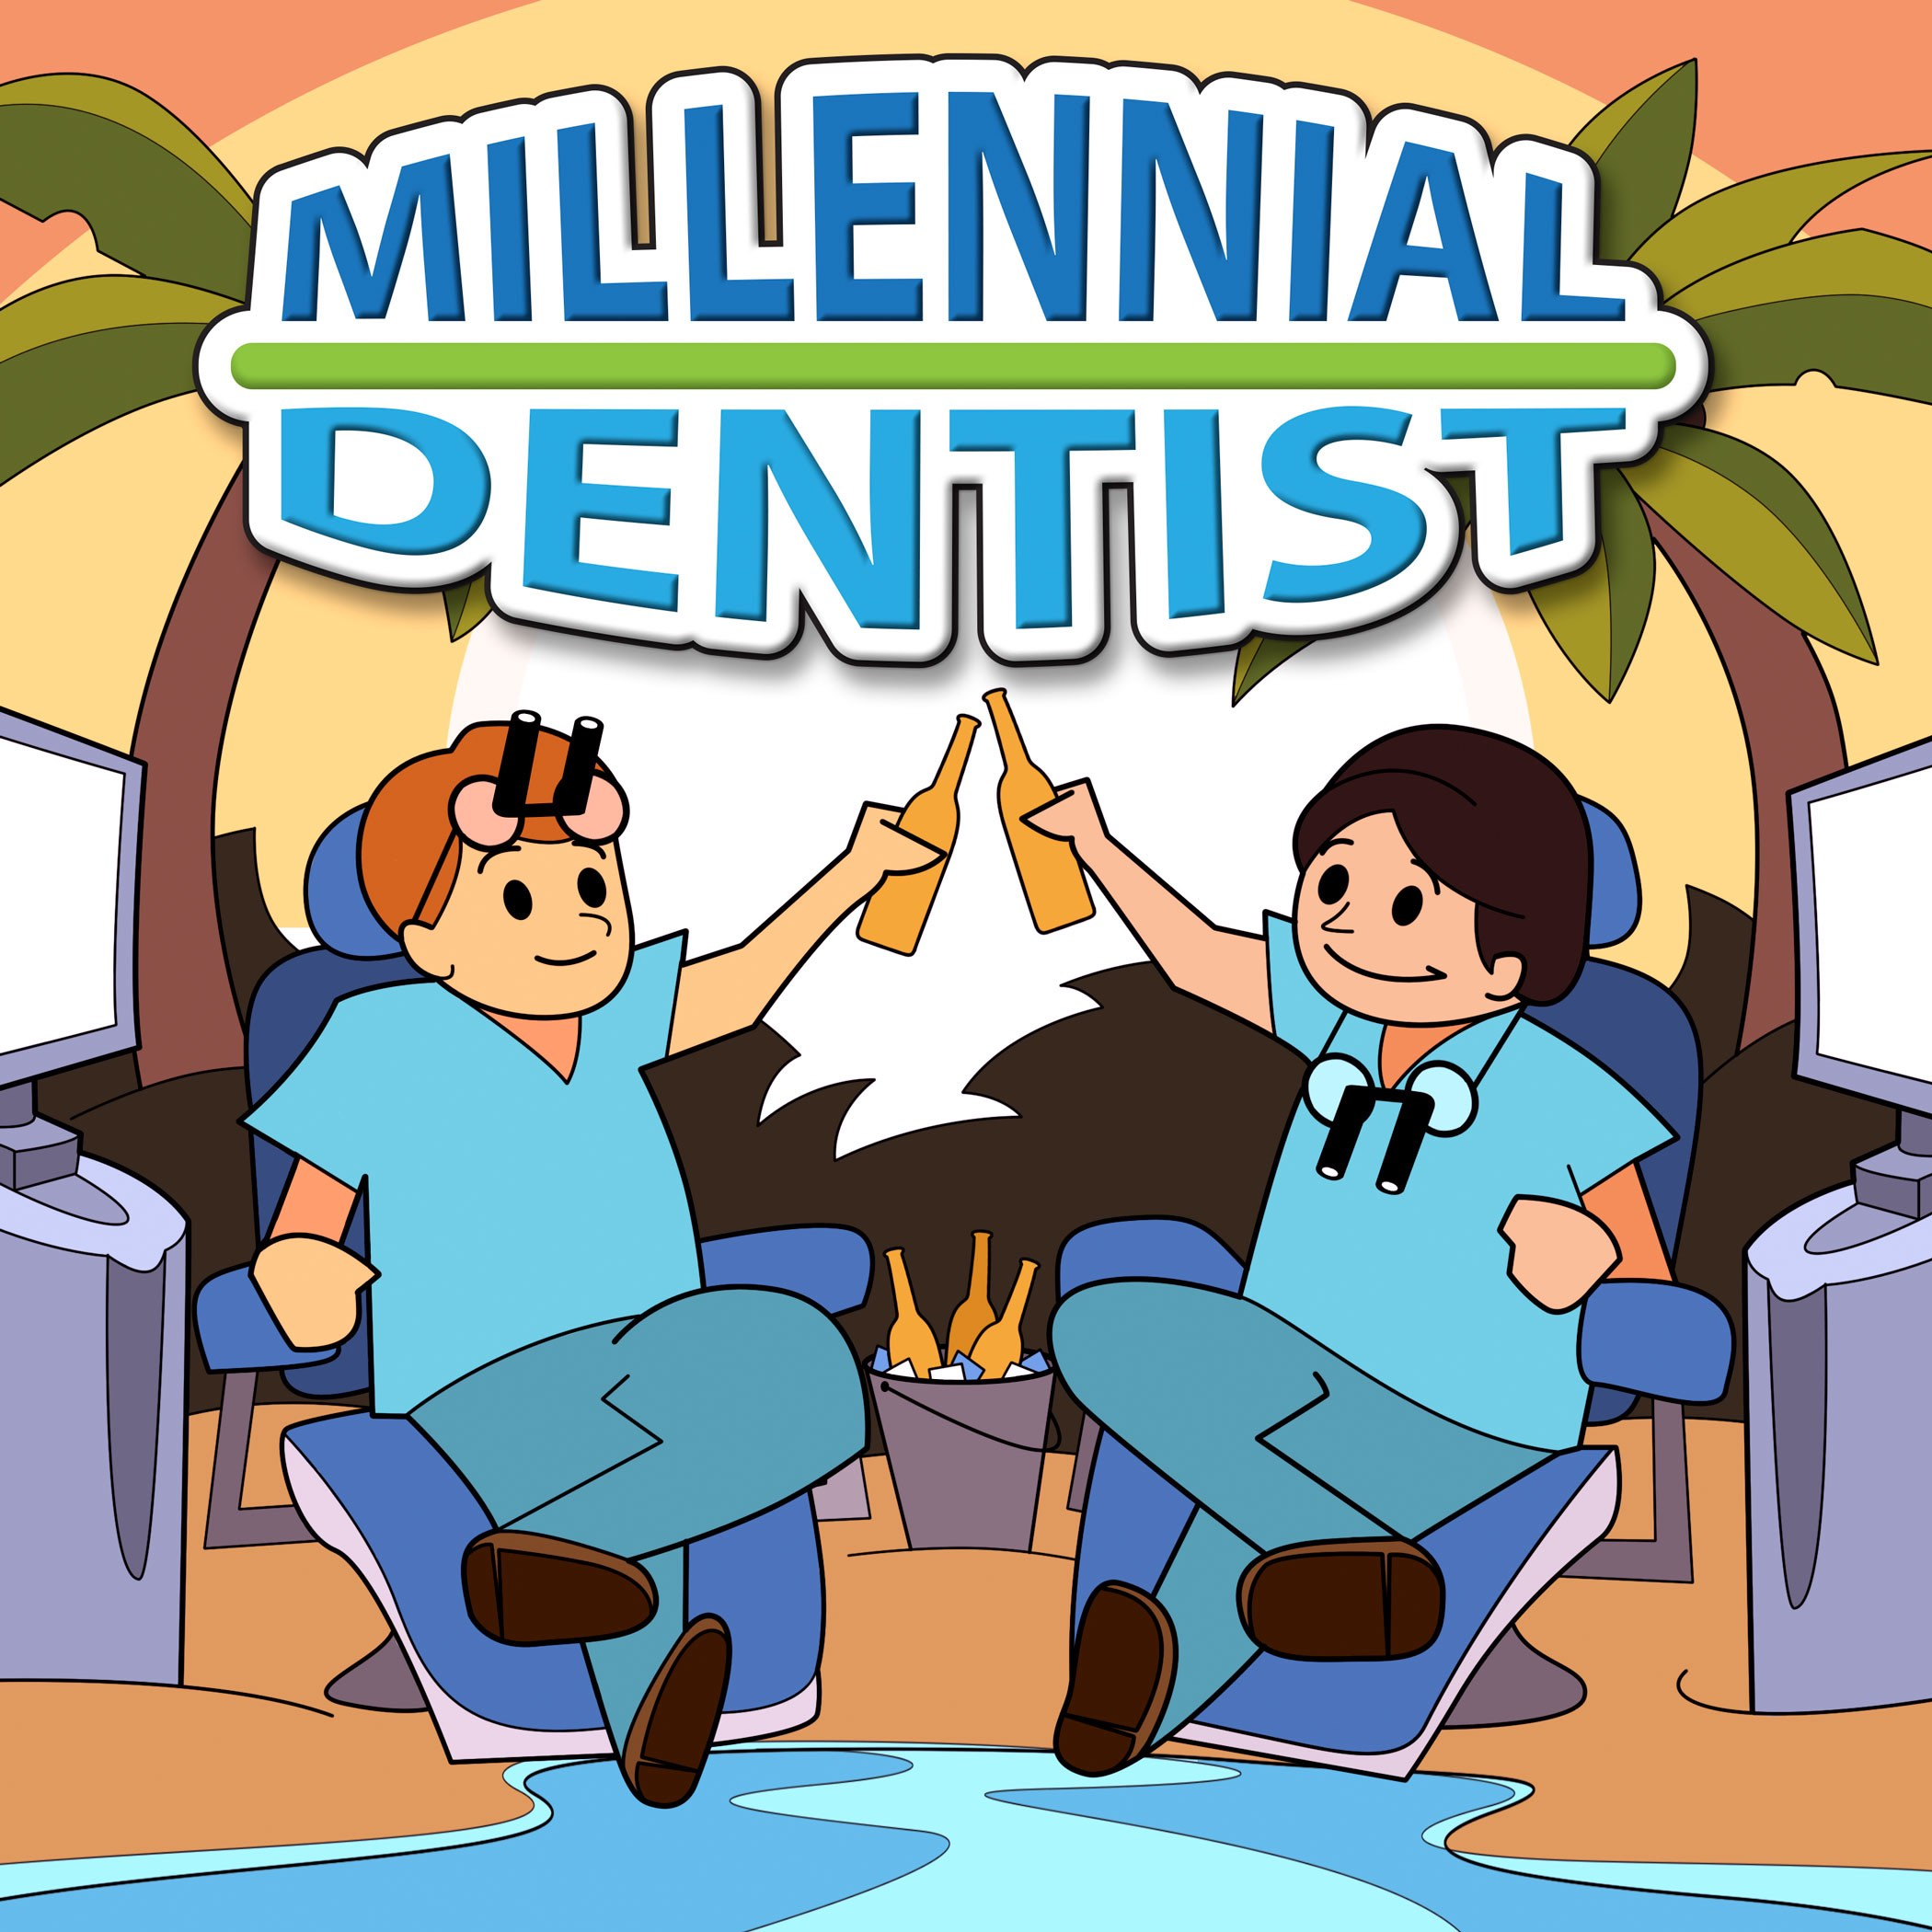 The Millennial Dentist